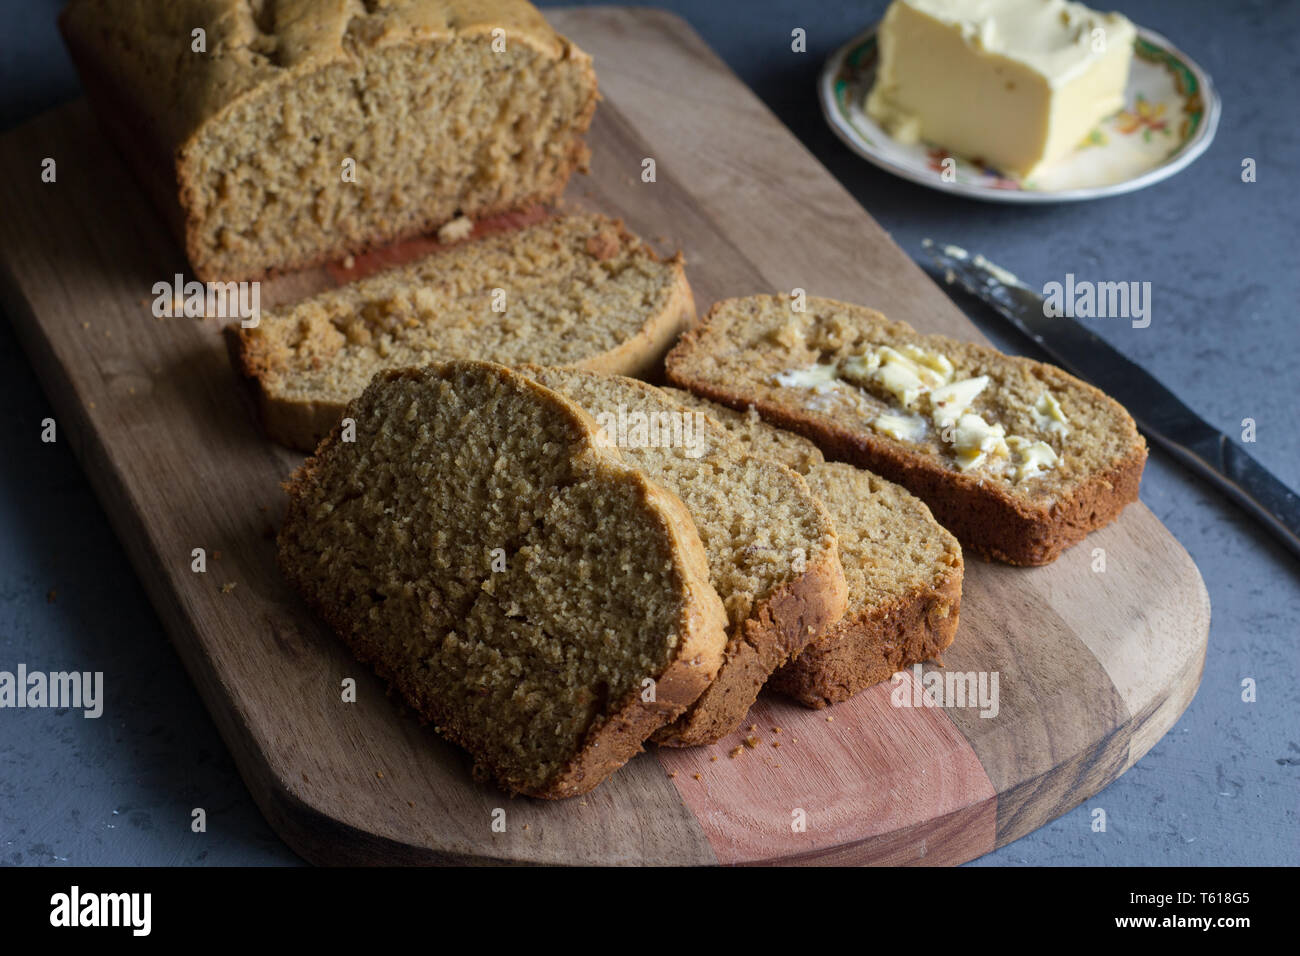 Banana bread loaf with slices and butter  on wooden board on grey background Stock Photo